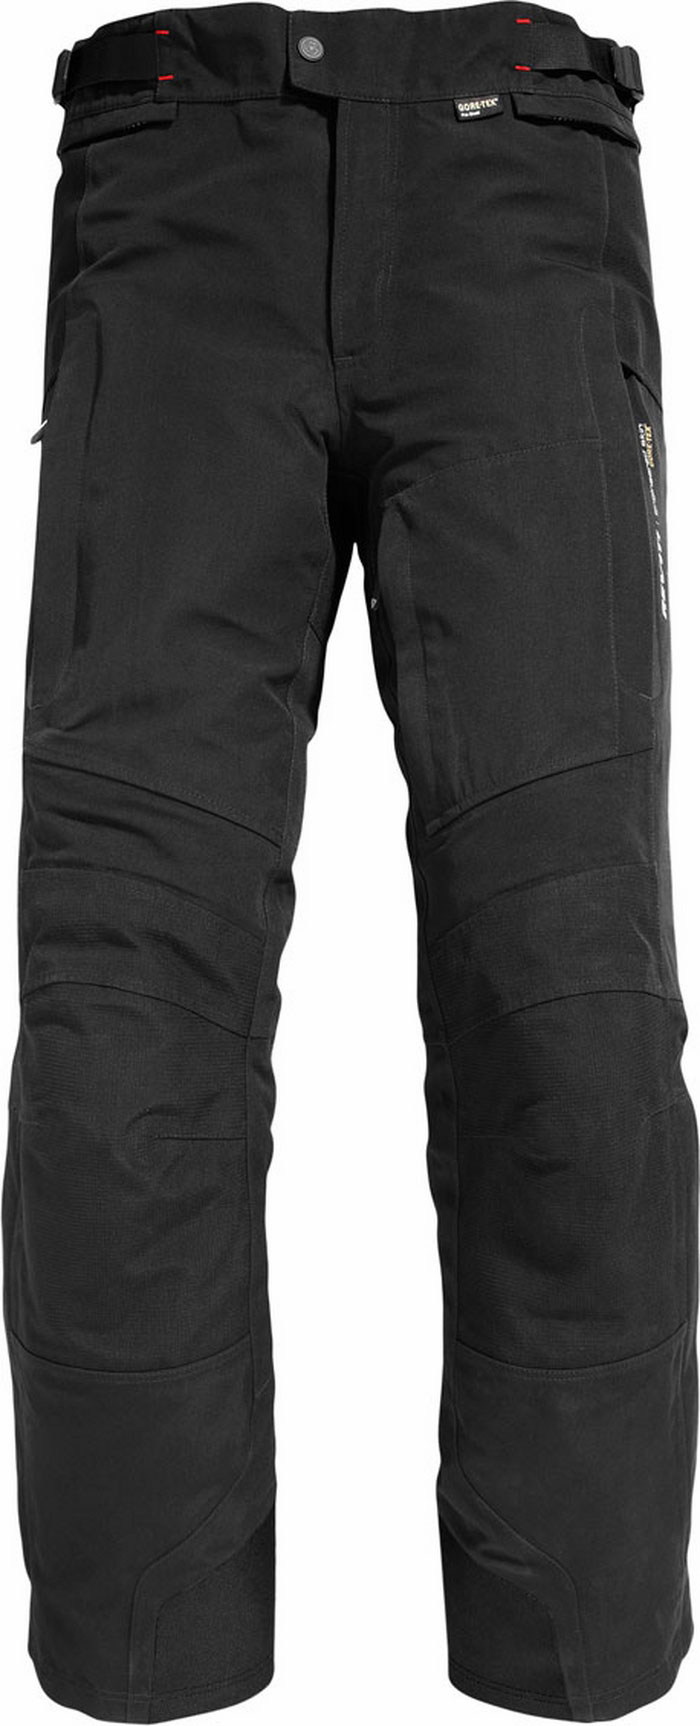 Pantaloni Moto Rev'it Everest GTX